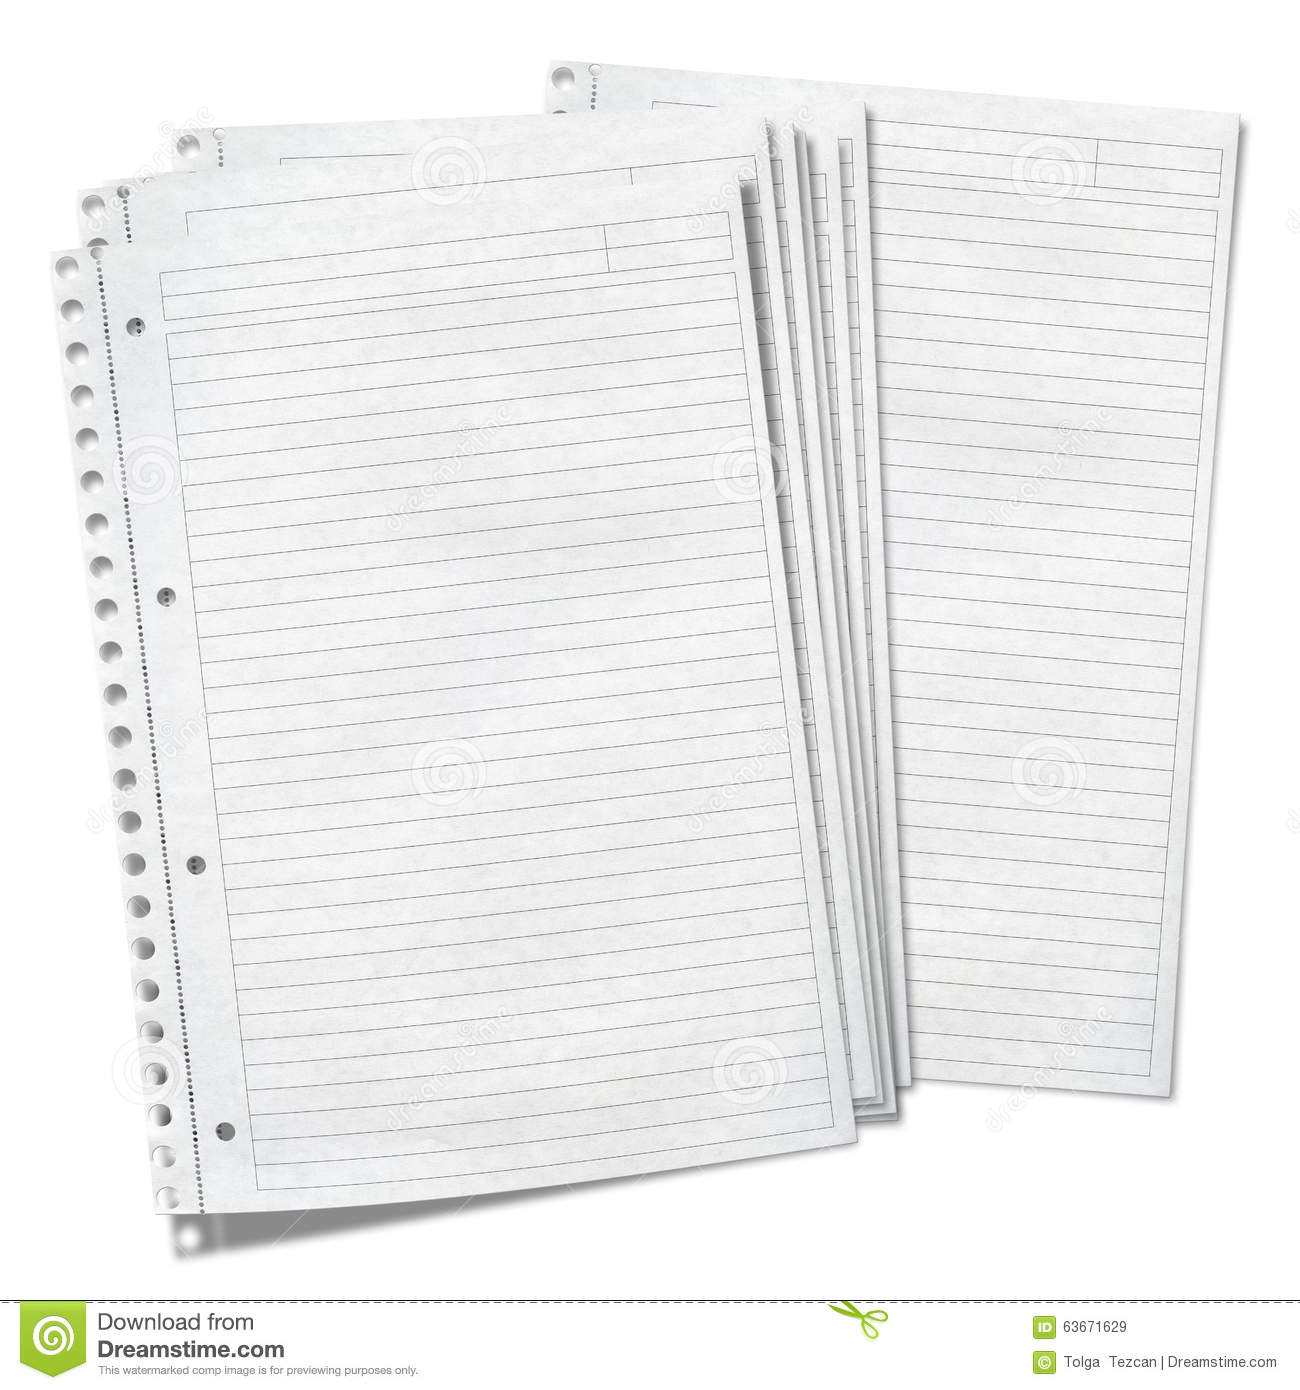 Close Up View Of Sheets Of Lined Paper Stock Photo